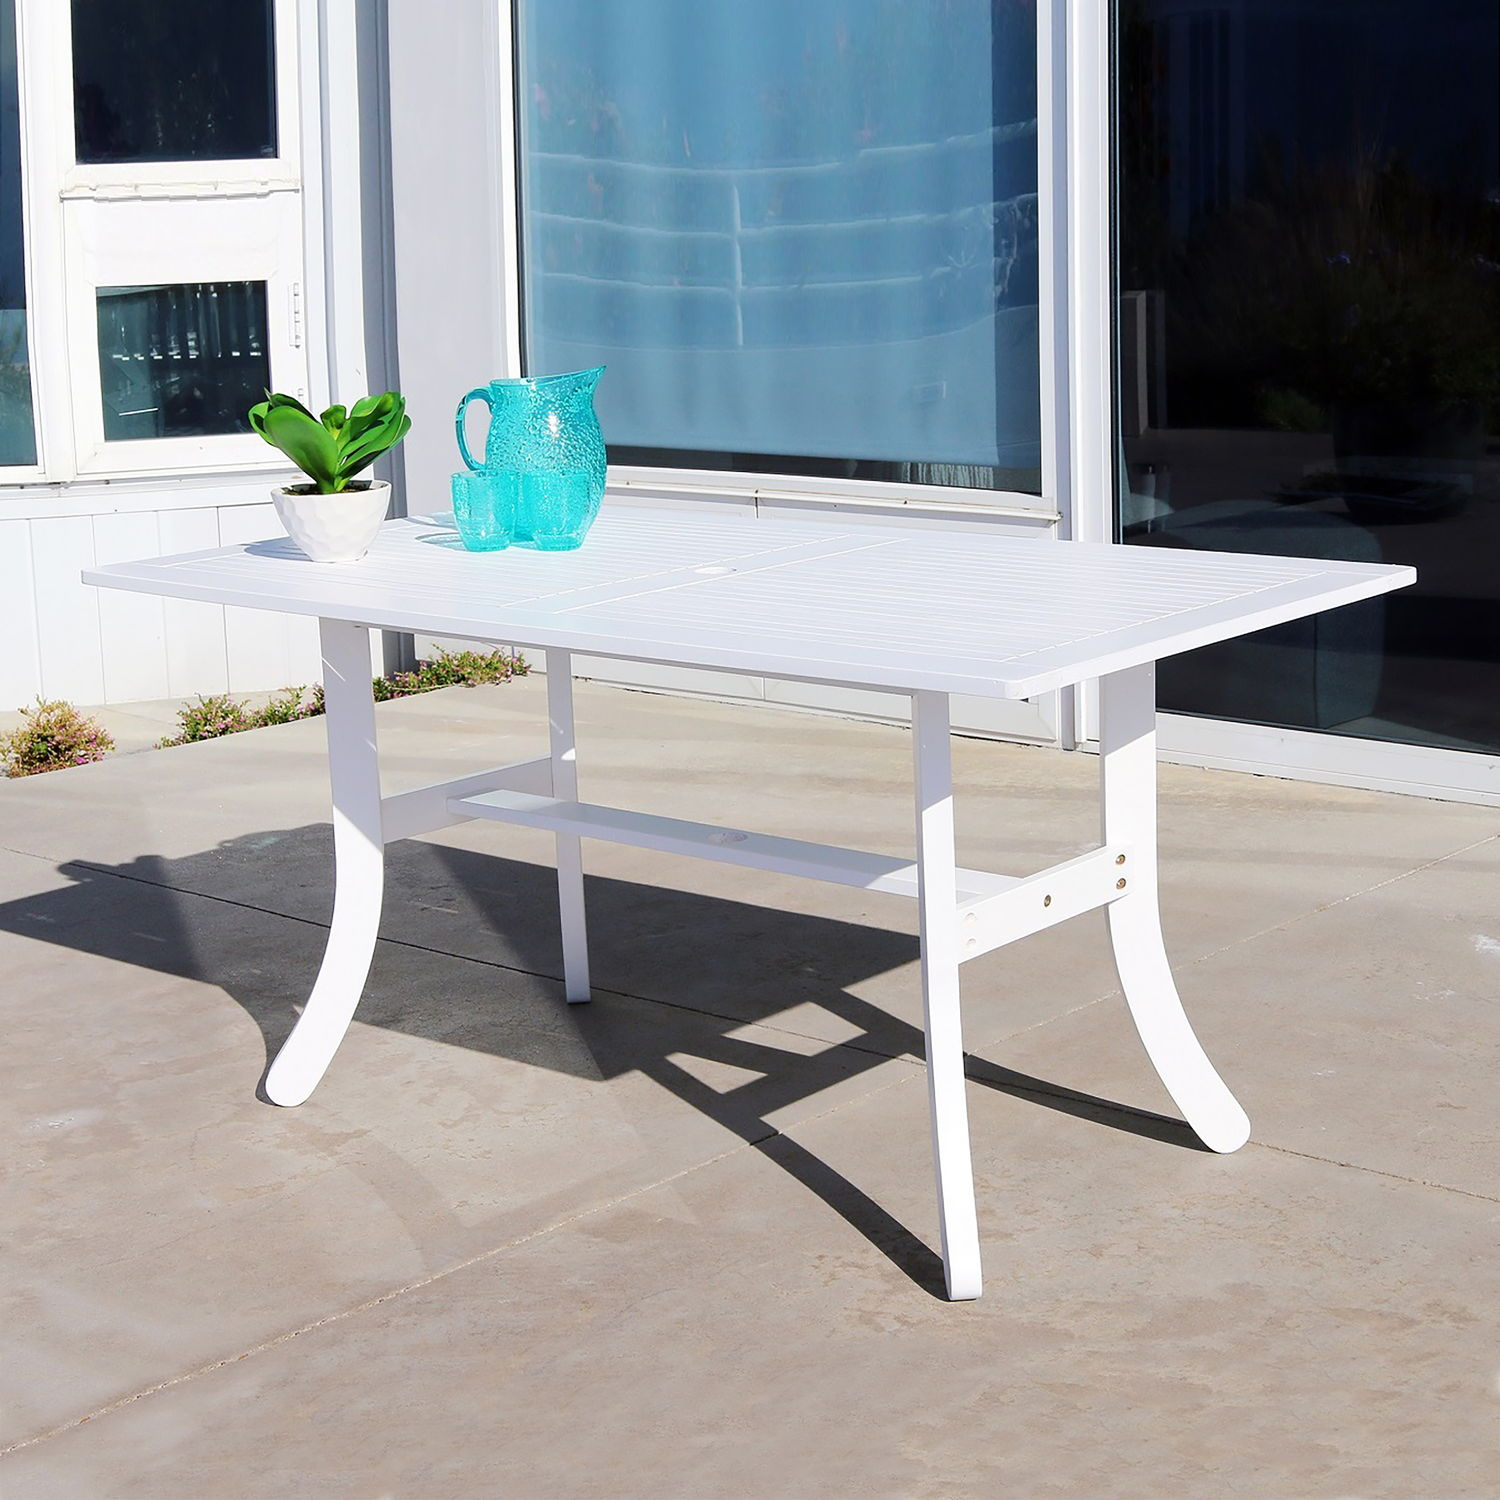 Bradley Outdoor Rectangular Dining Table with Curvy Legs